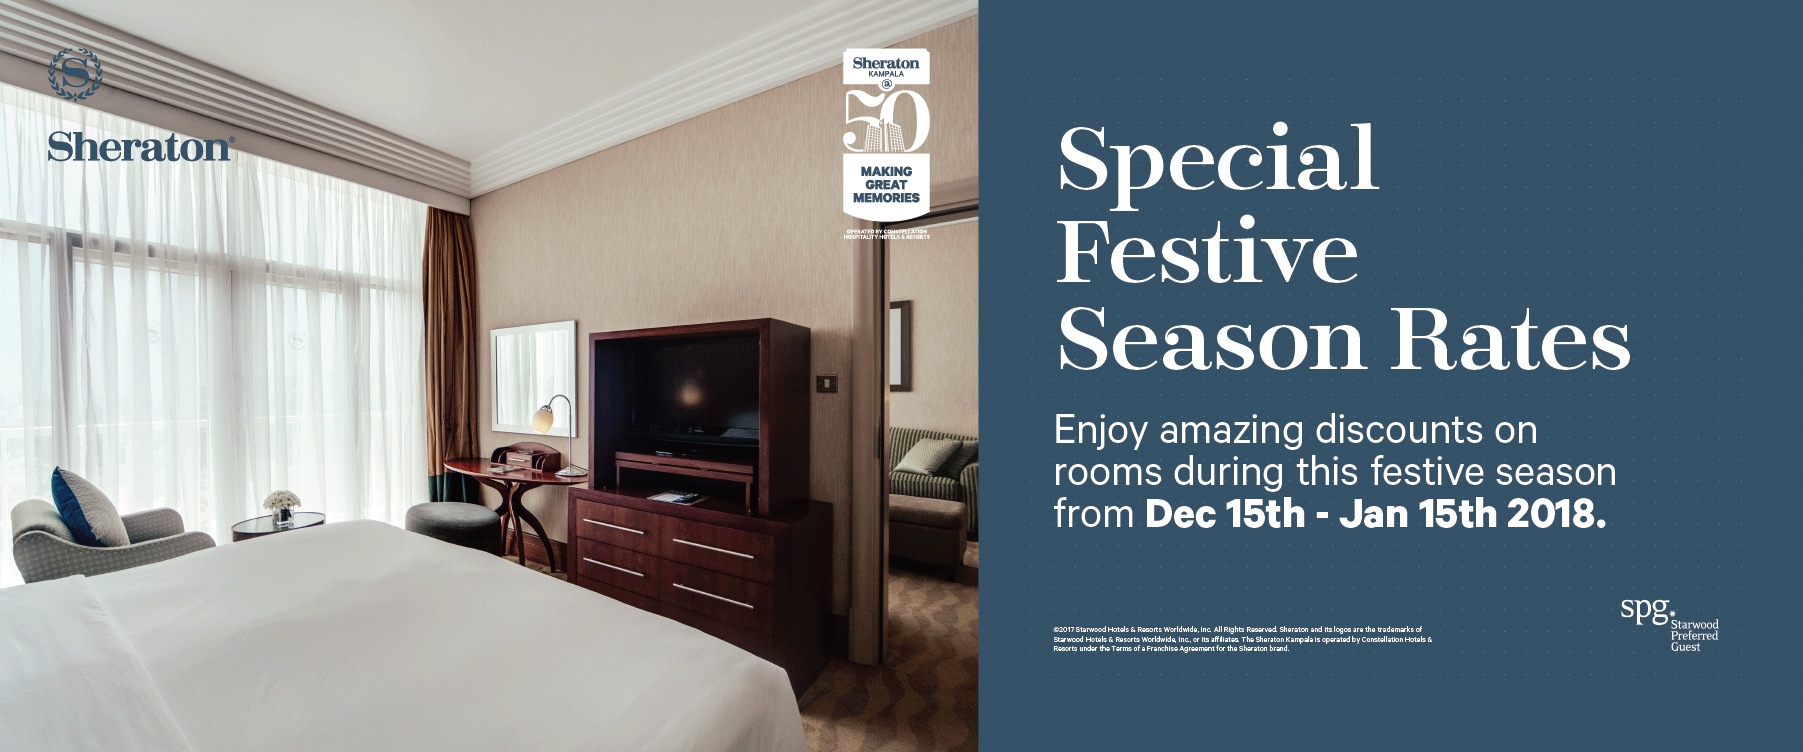 The Sheraton Kampala - open for business this festive season at very special rates ...